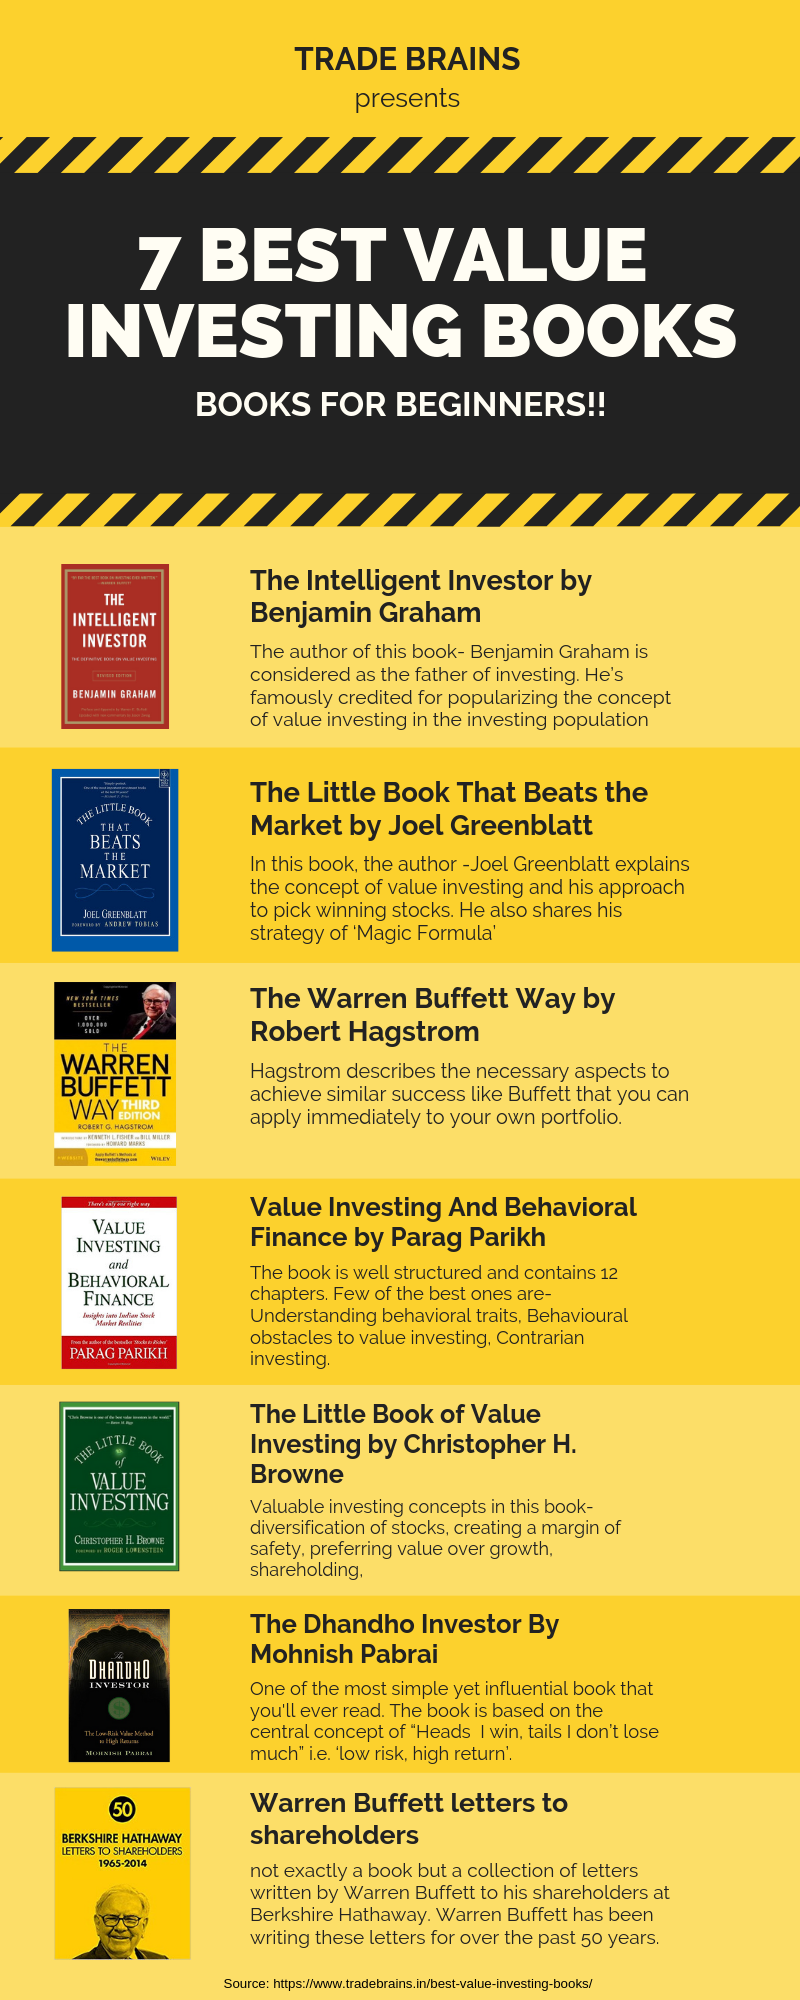 The Little Book of Value Investing